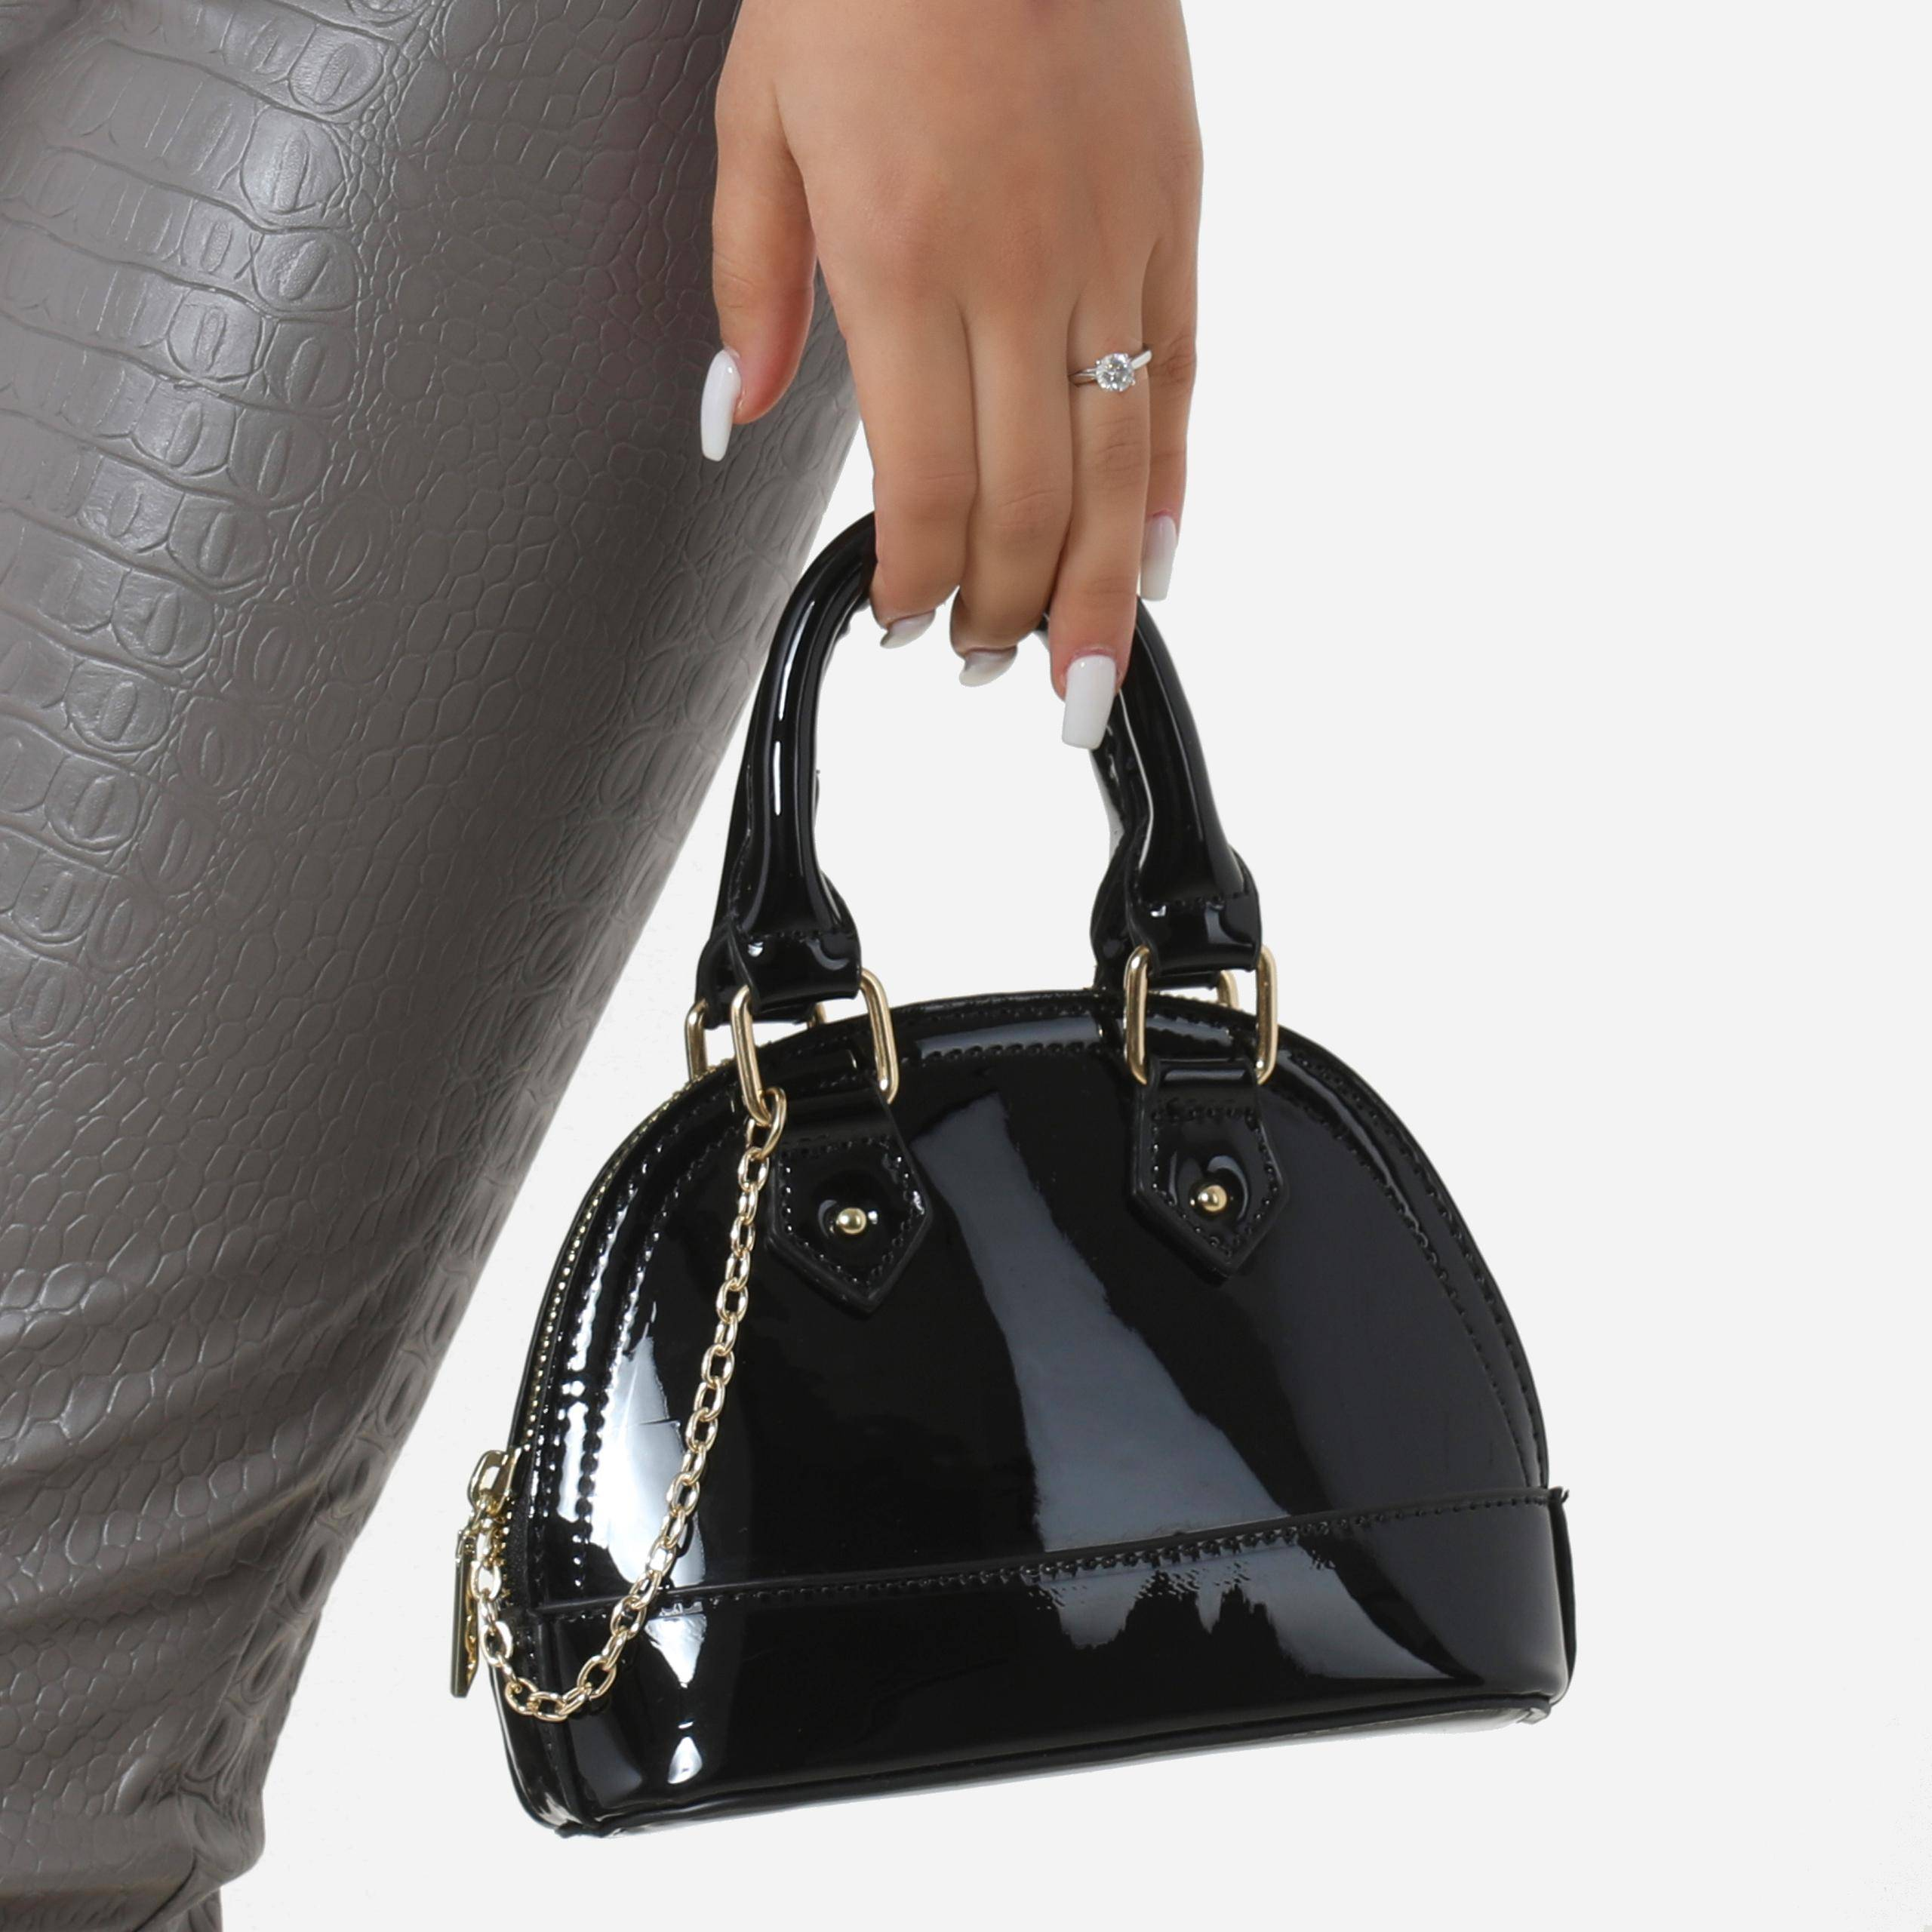 EGO Chain Detail Grab Bag In Black Patent,, Black  - female - Size: One Size